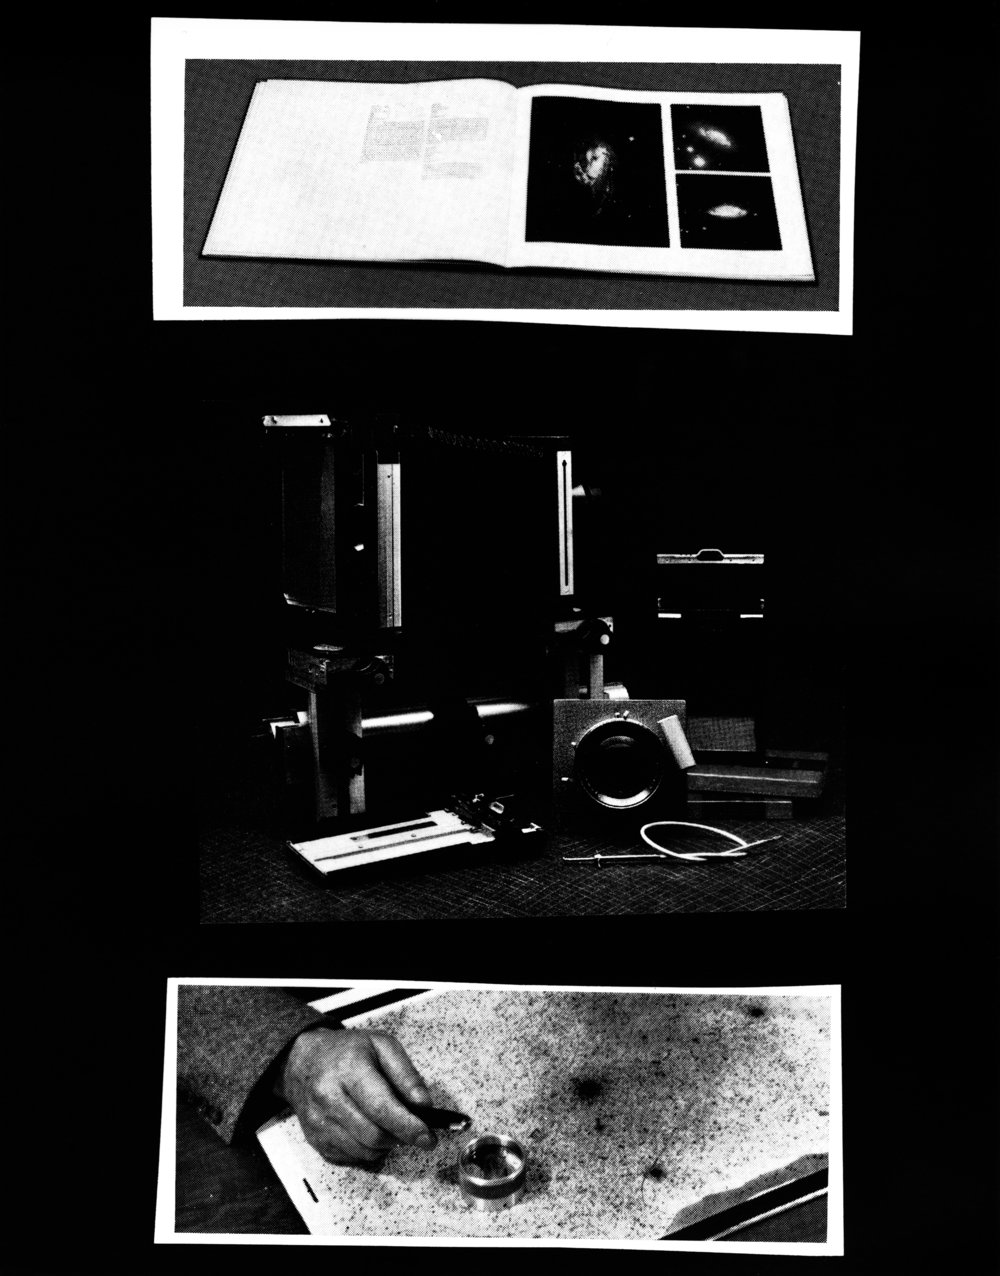 rearrangements_growleryphotograms_0001.jpg